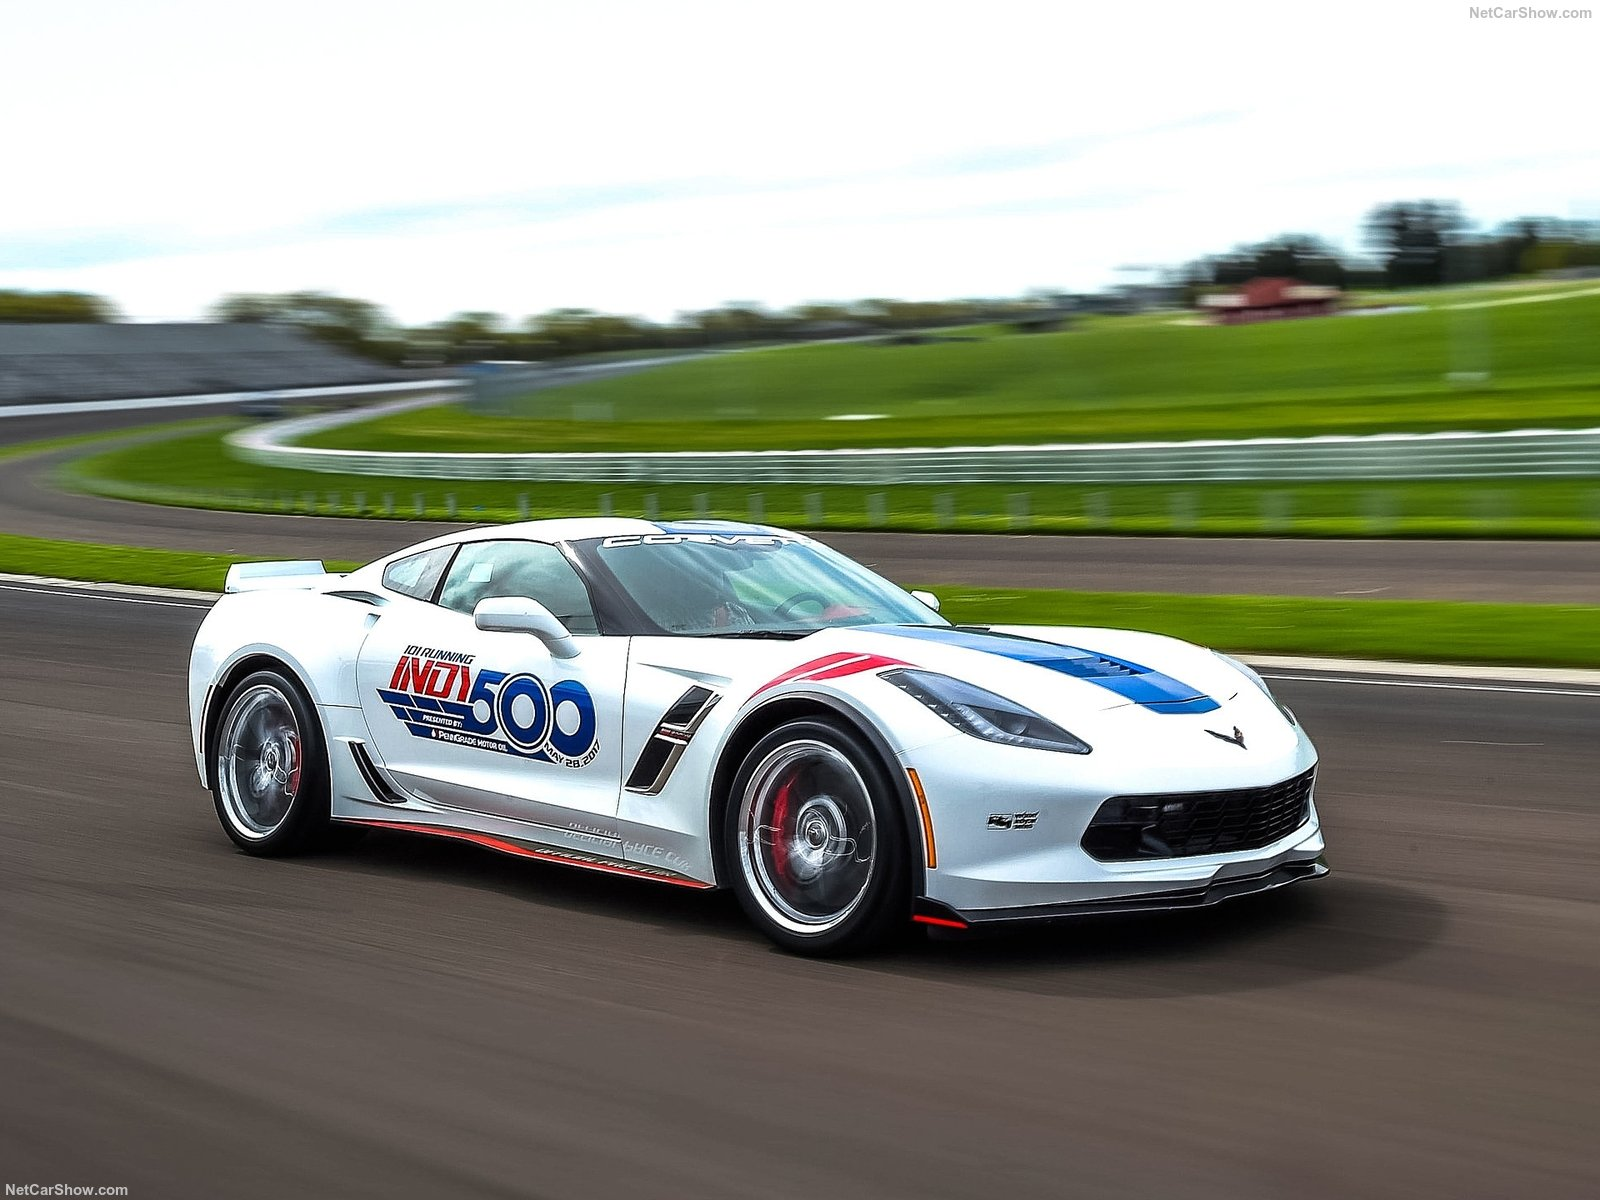 2017 Chevrolet Corvette Grand Sport Indy 500 Pace-Car